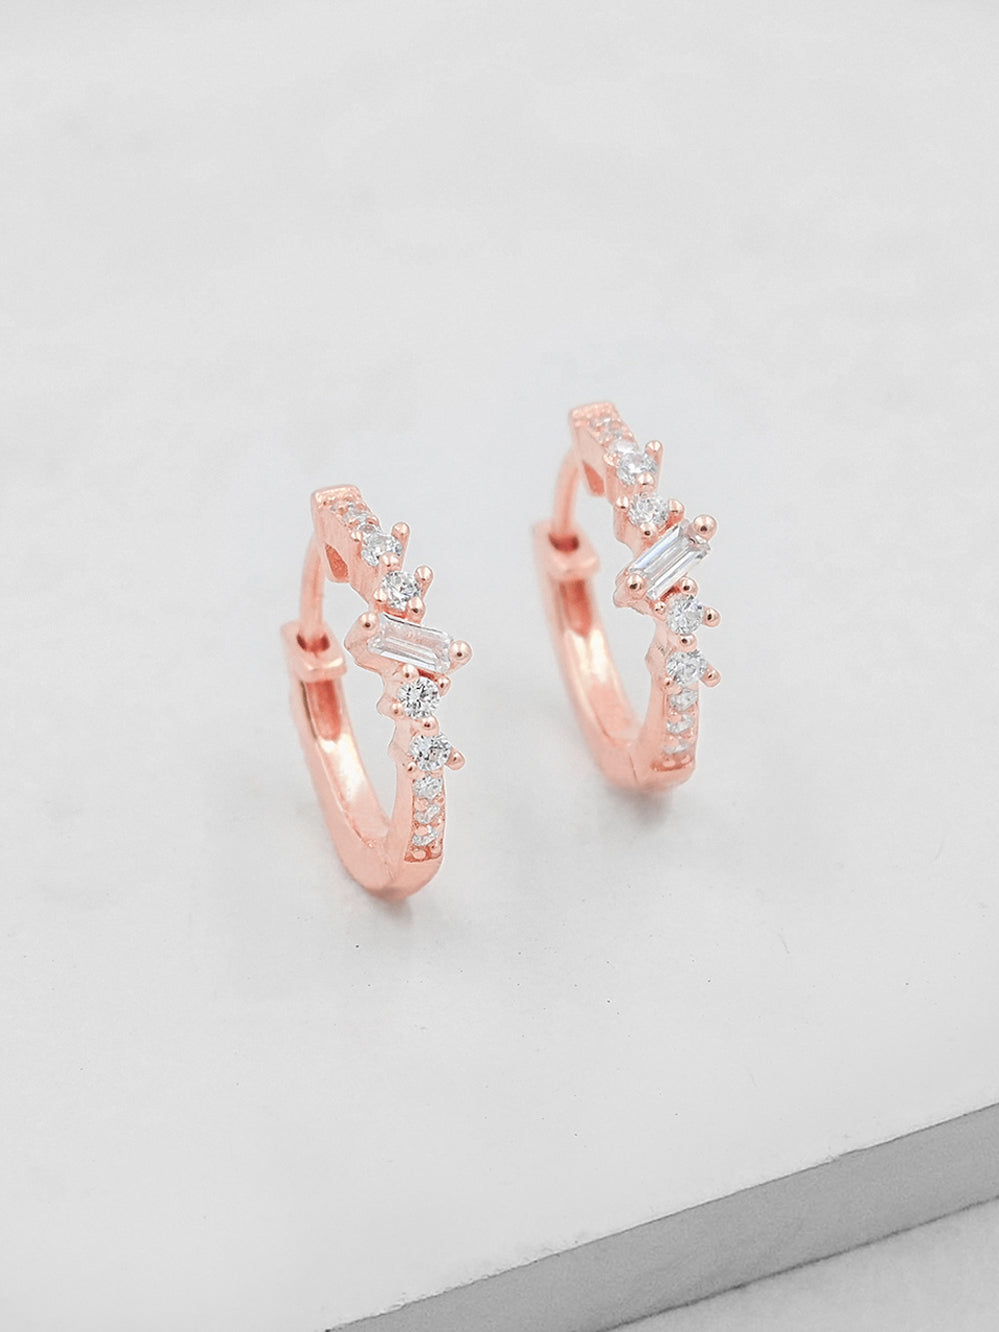 Rose Gold Plated Clusters Baguette and Round CZ Huggies Earrings by The Faint Hearted Jewelry